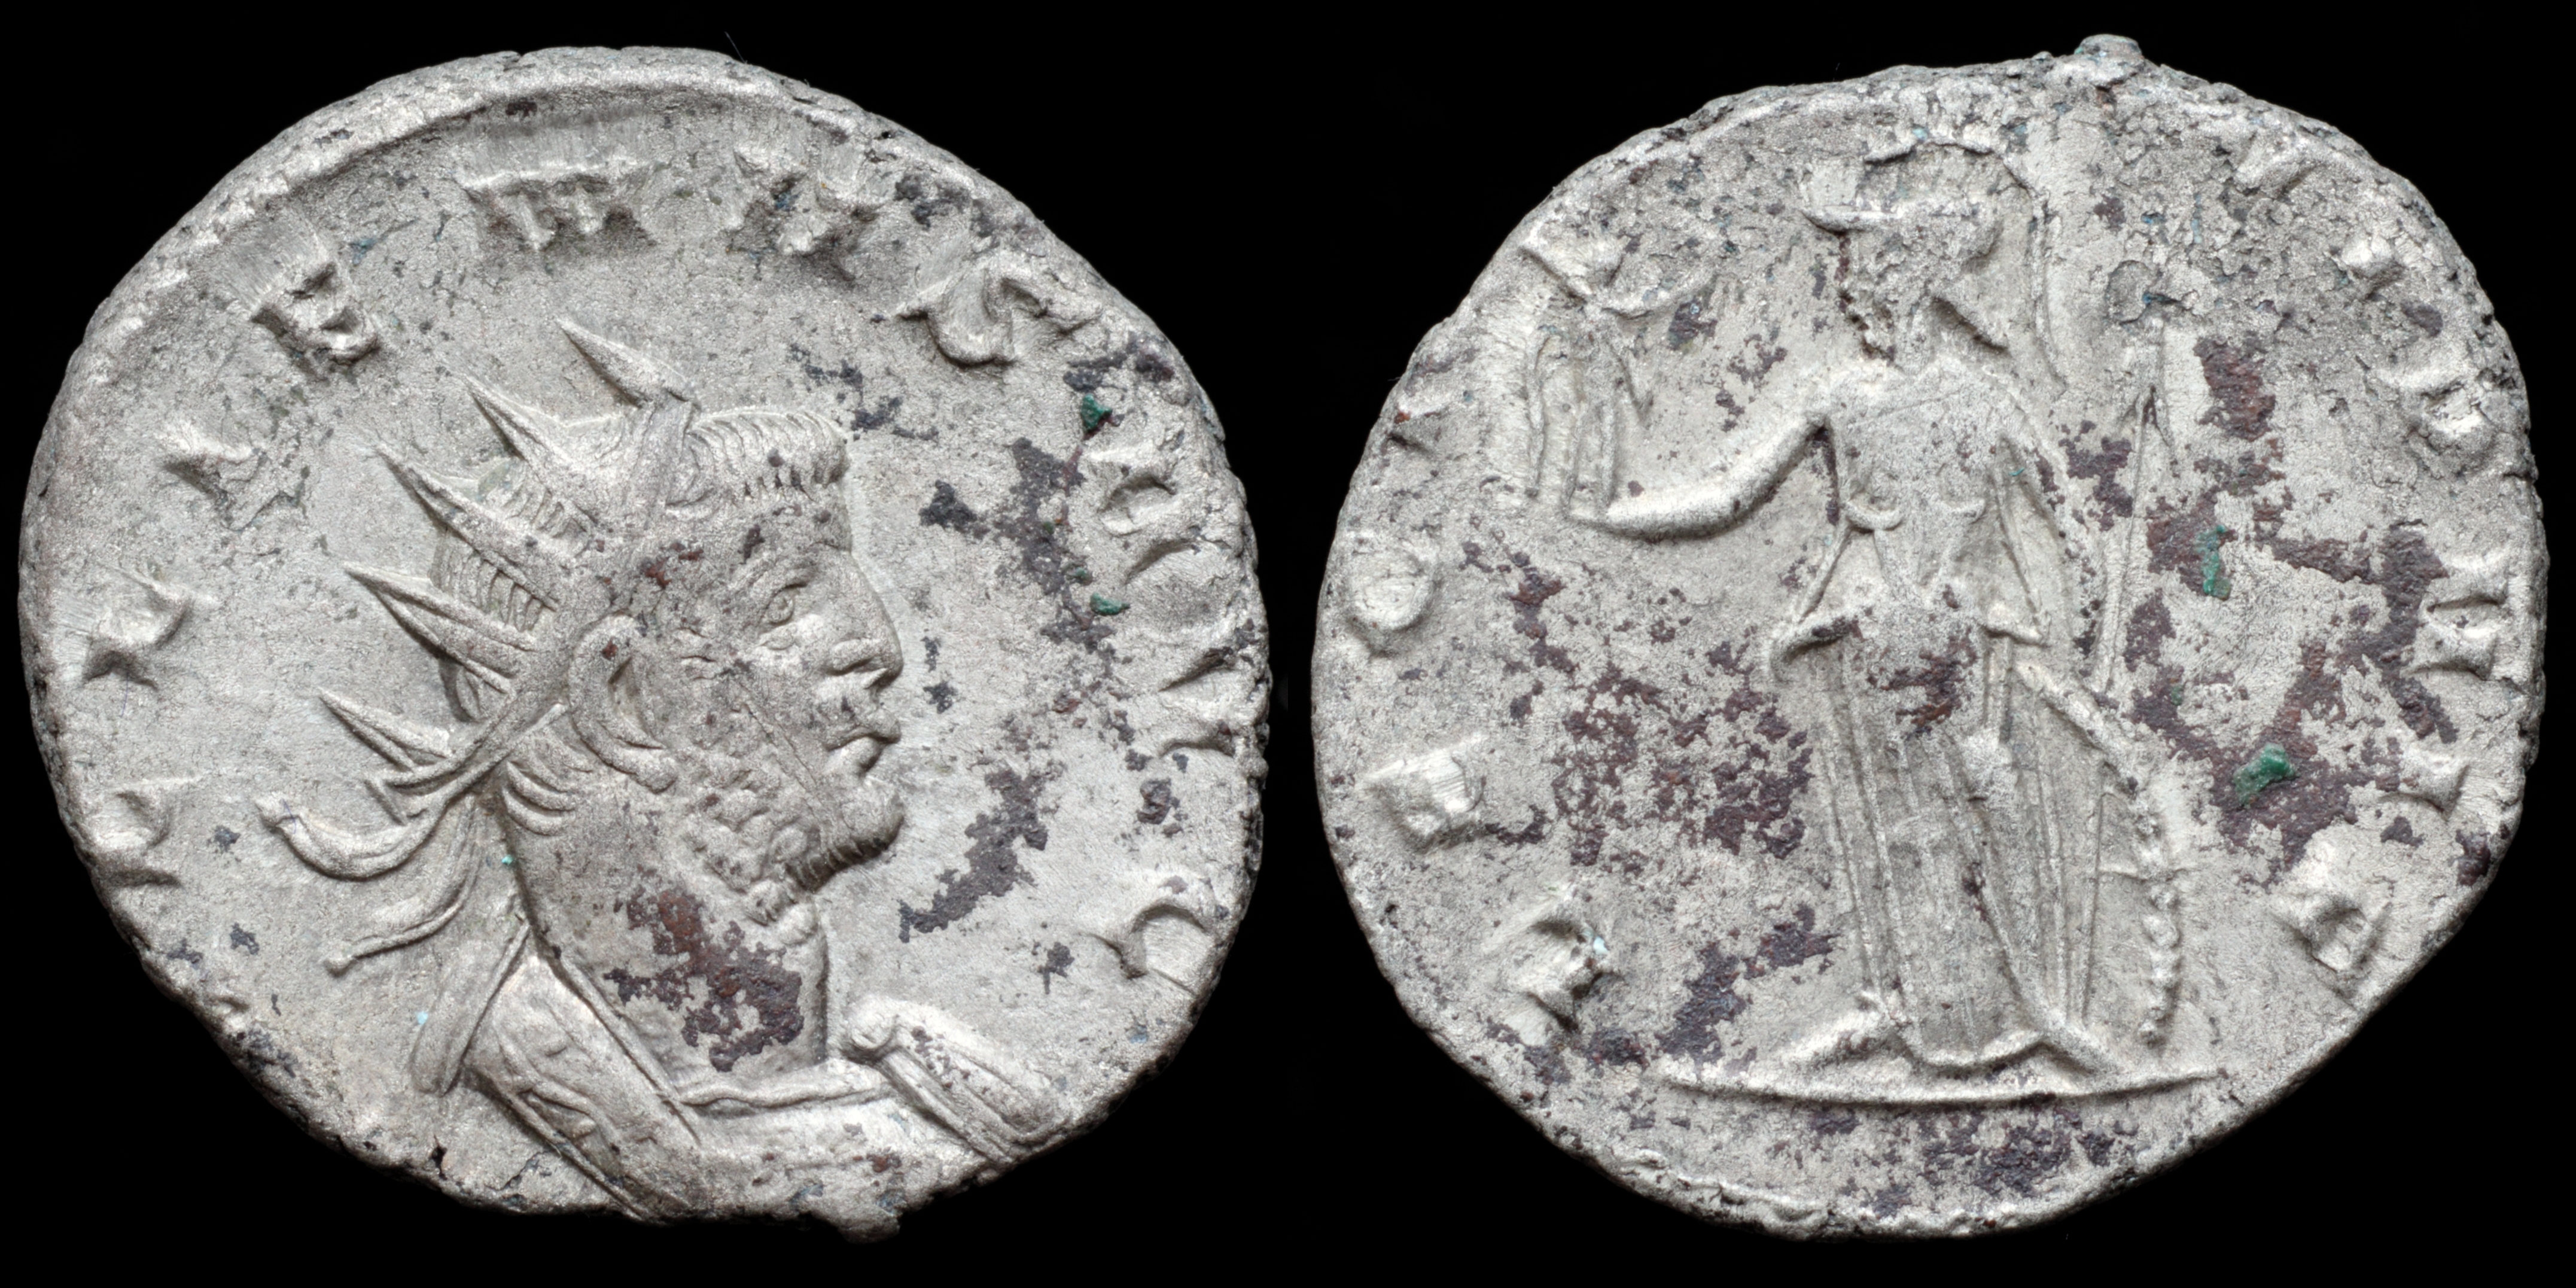 /Files/Images/Coinsite/CoinDB/962_Gallienus_LEG_I_Min_VI_P_VI_F.JPG